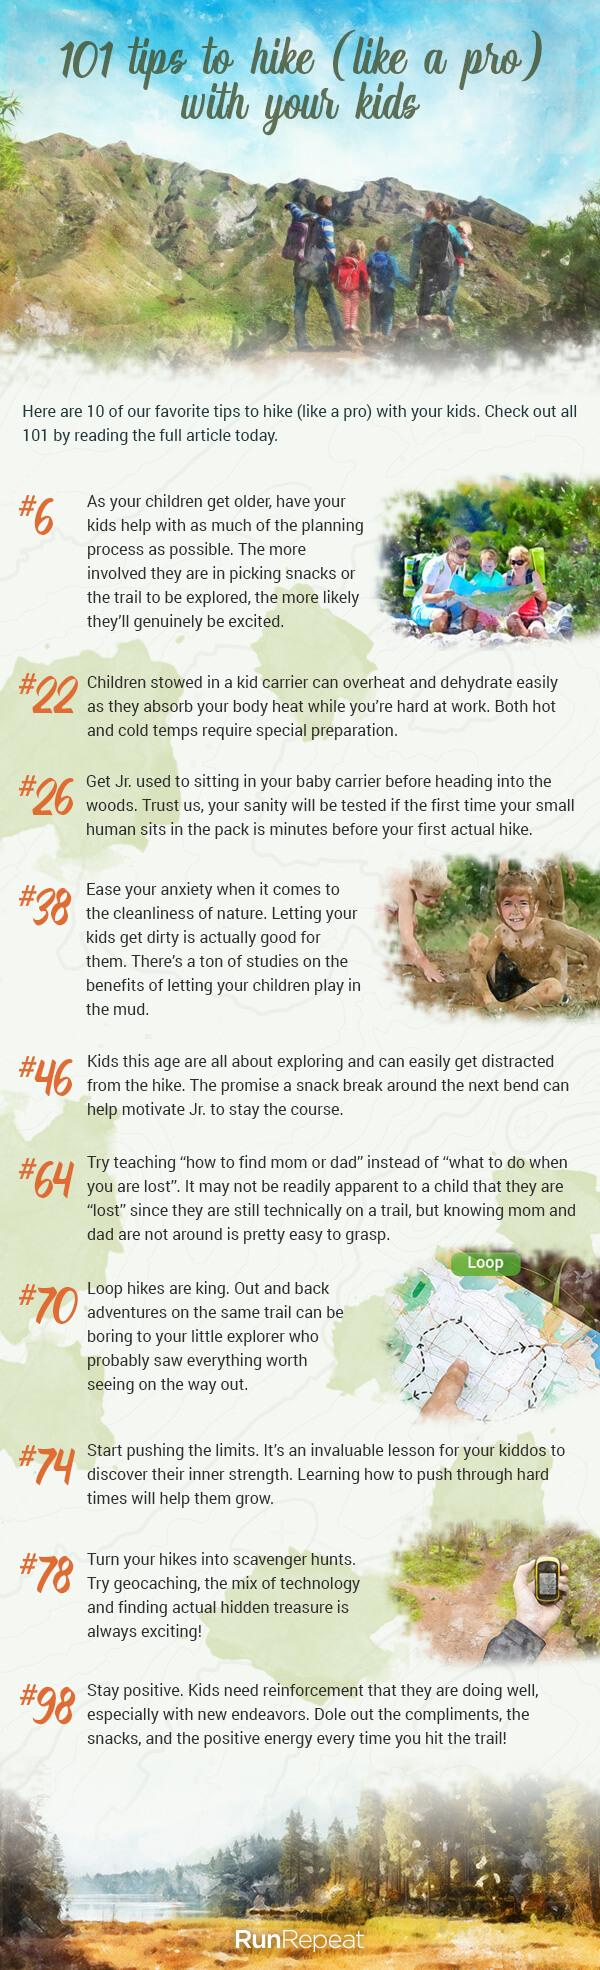 tips-for-hiking-with-your-kids-infographic